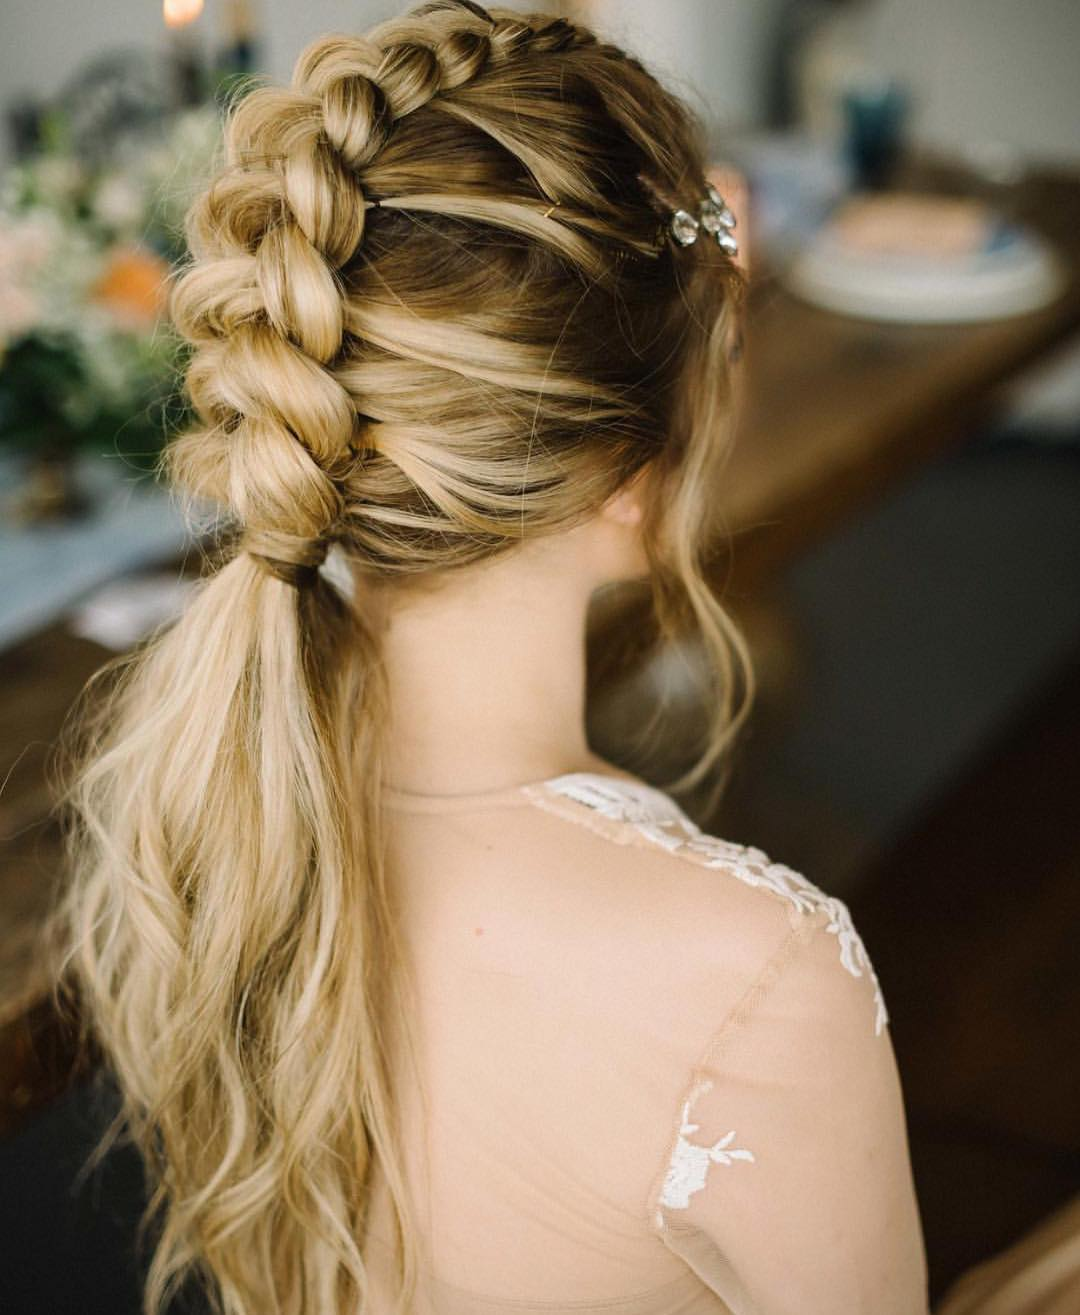 28 Prettiest Wedding Hairstyles: 10 Braided Hairstyles For Long Hair